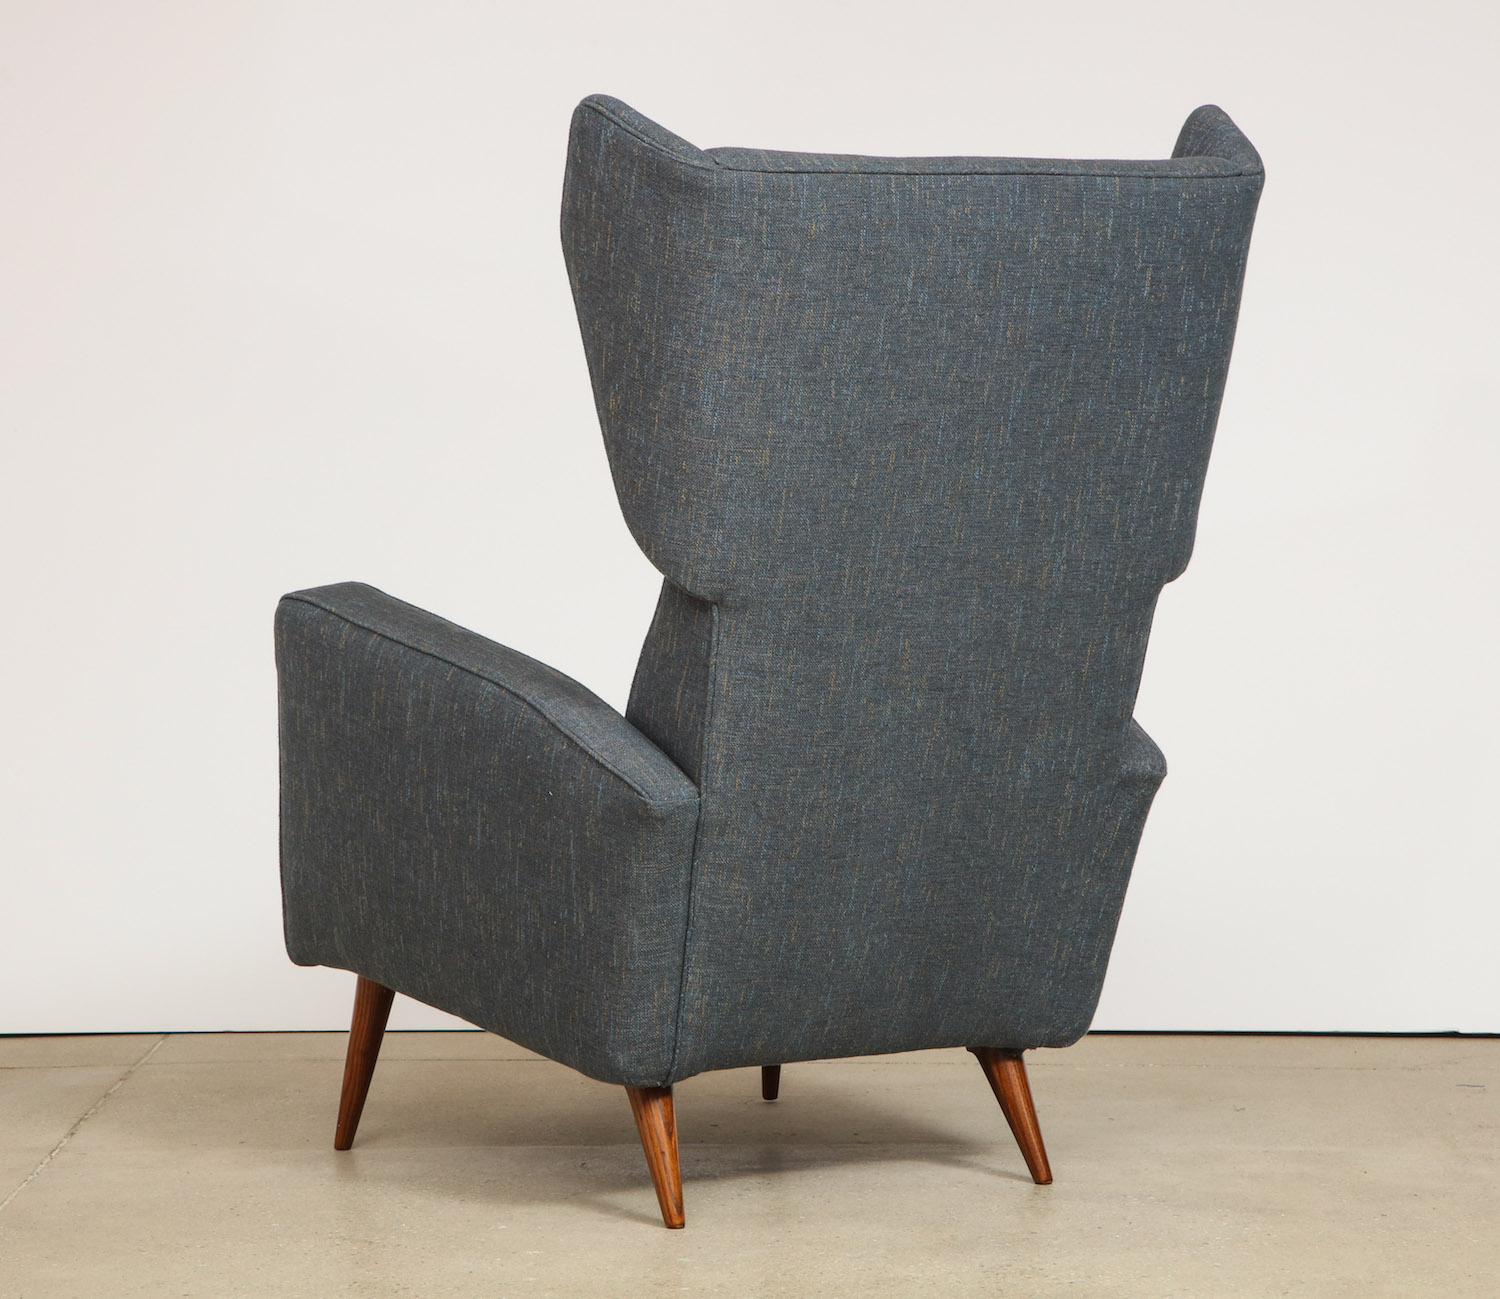 Ponti Dassi Wing Chairs 7.jpg